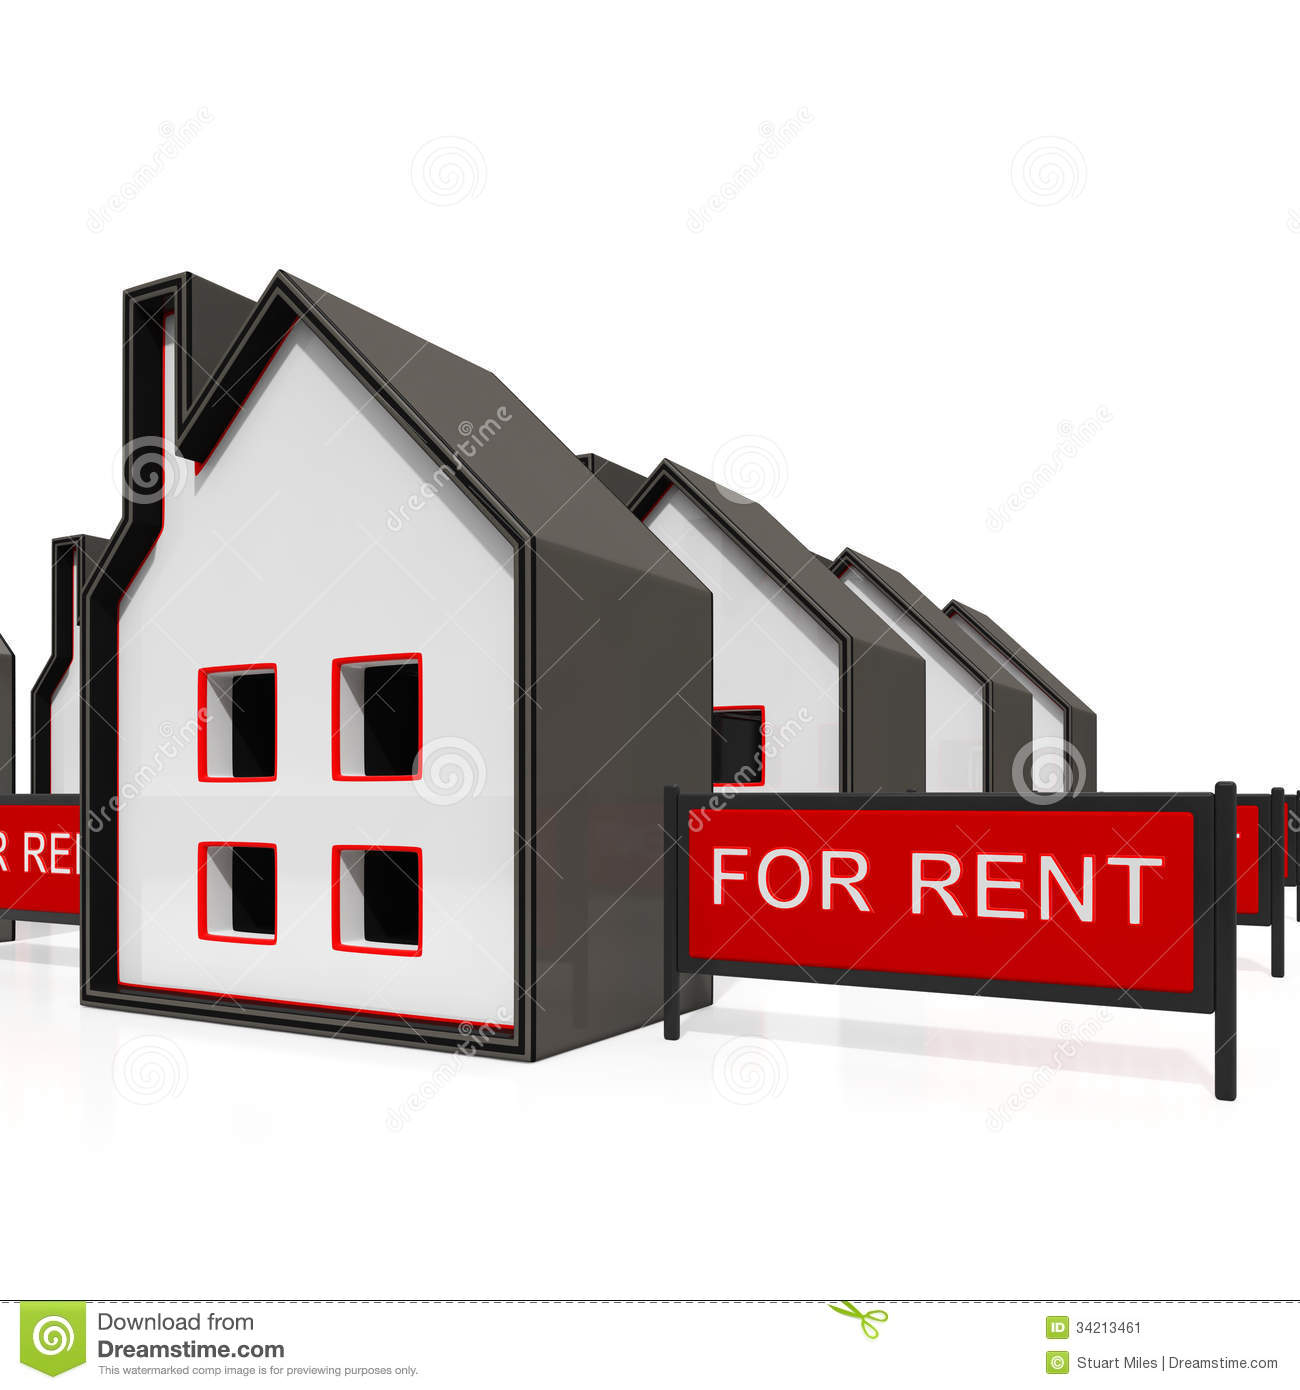 Apartment For Rent Sign: Apartment For Rent Signs Clip Art